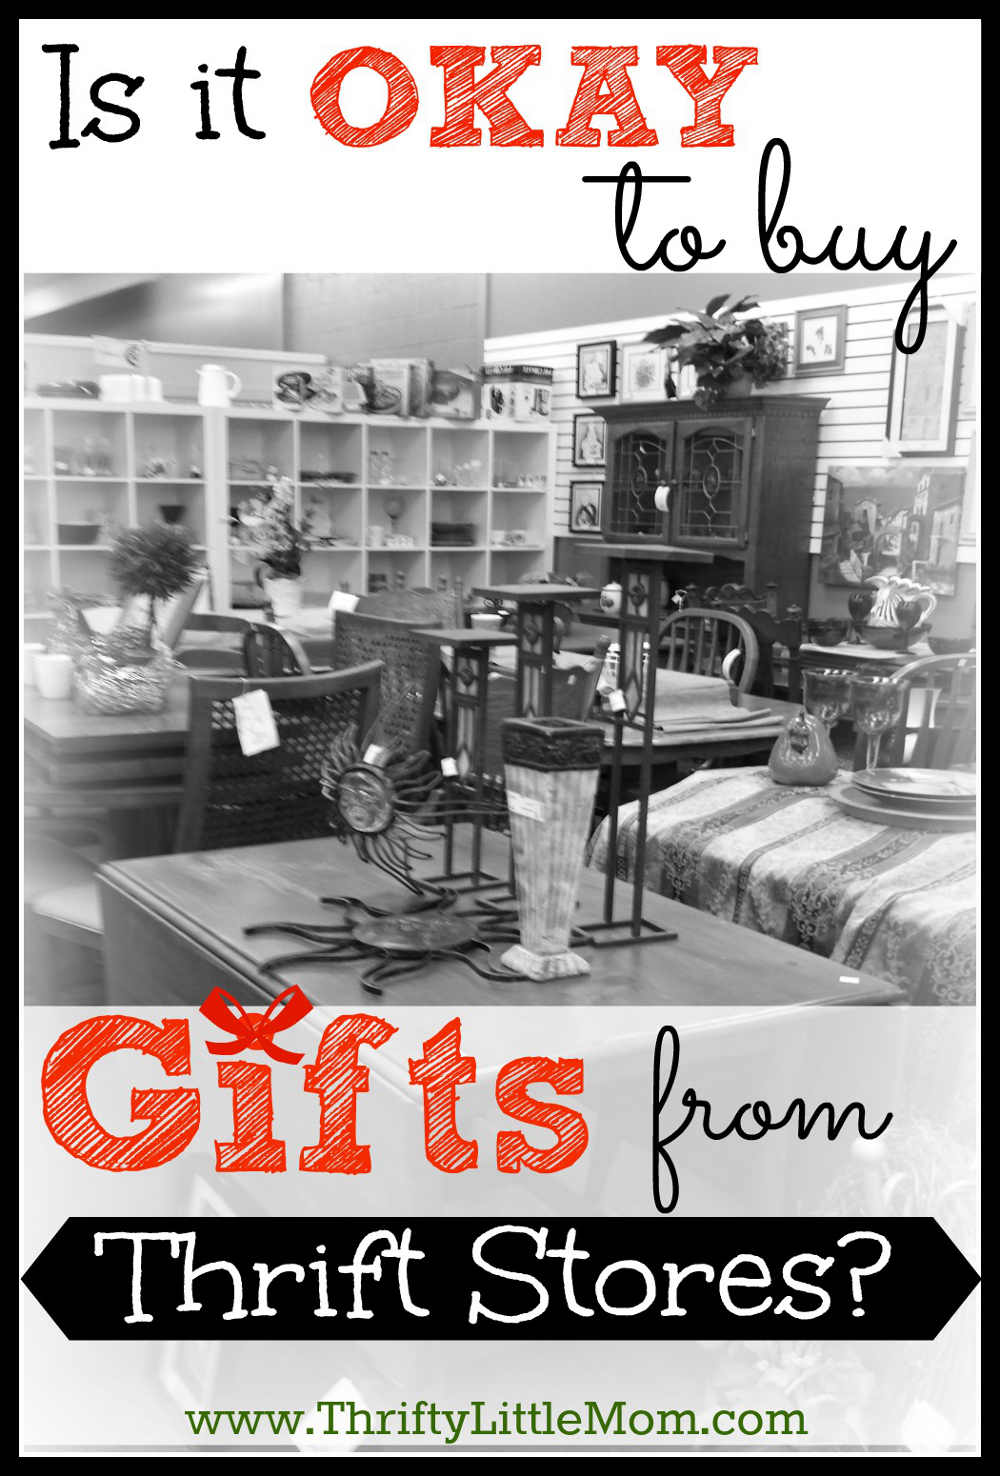 Is it okay to buy gifts from thrift stores. Check out this guide for do's and don'ts with thrift store gift shopping